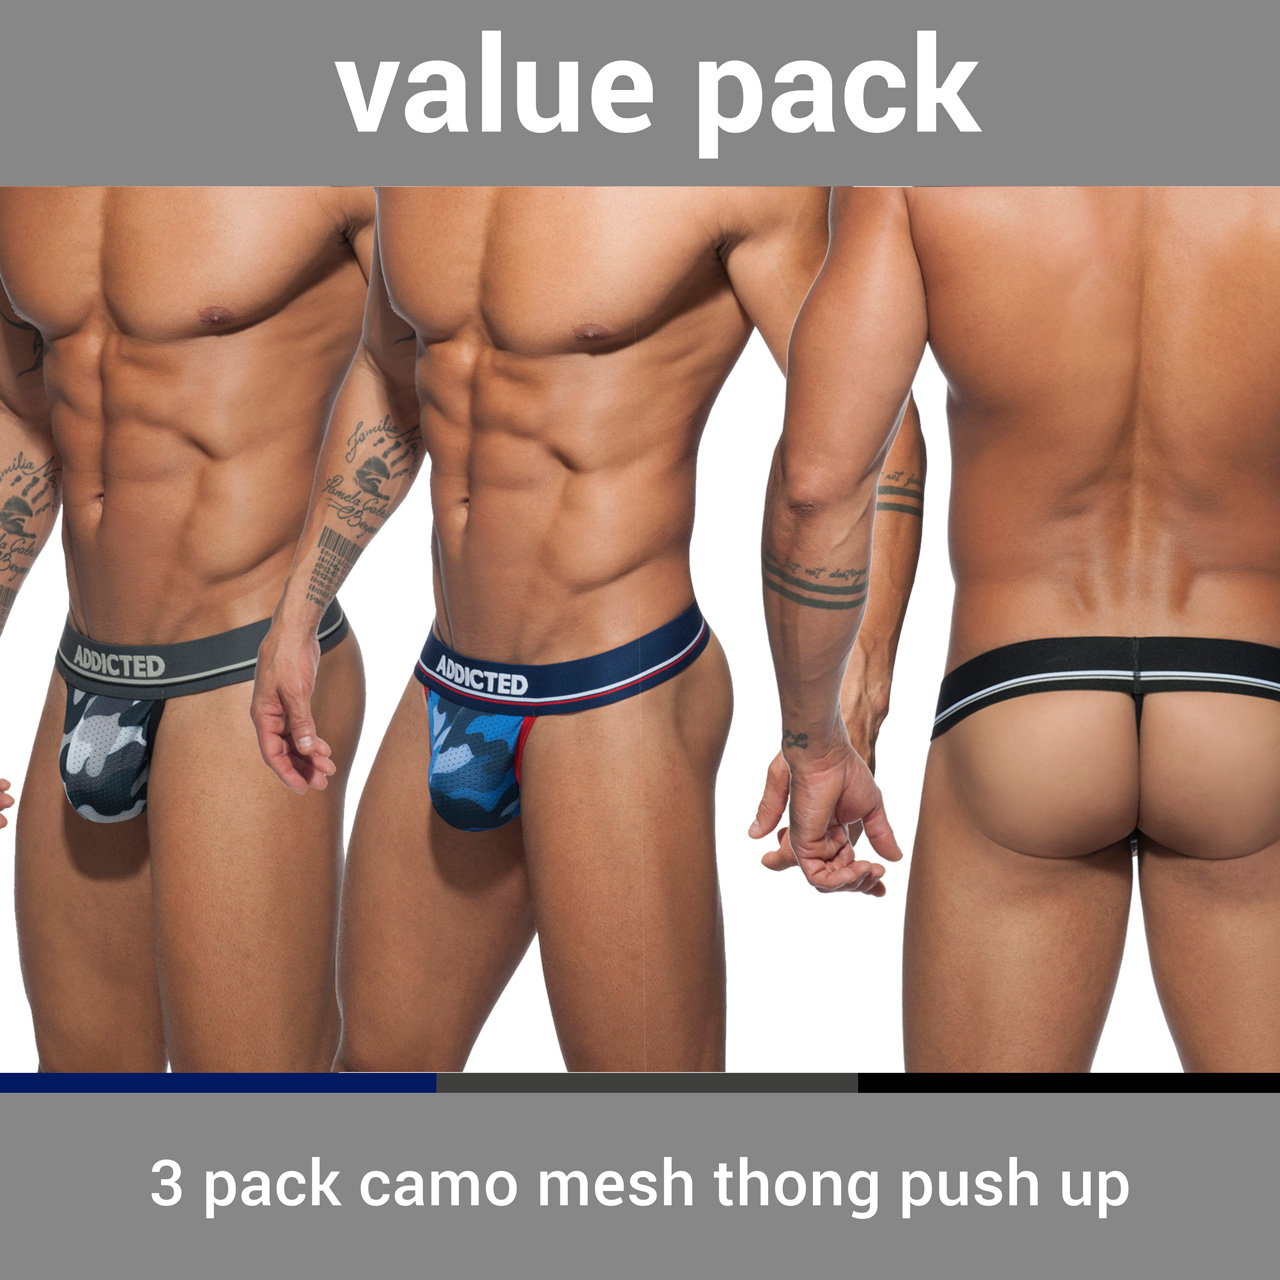 3 PACK CAMO MESH THONG PUSH UP 3 COLOURS